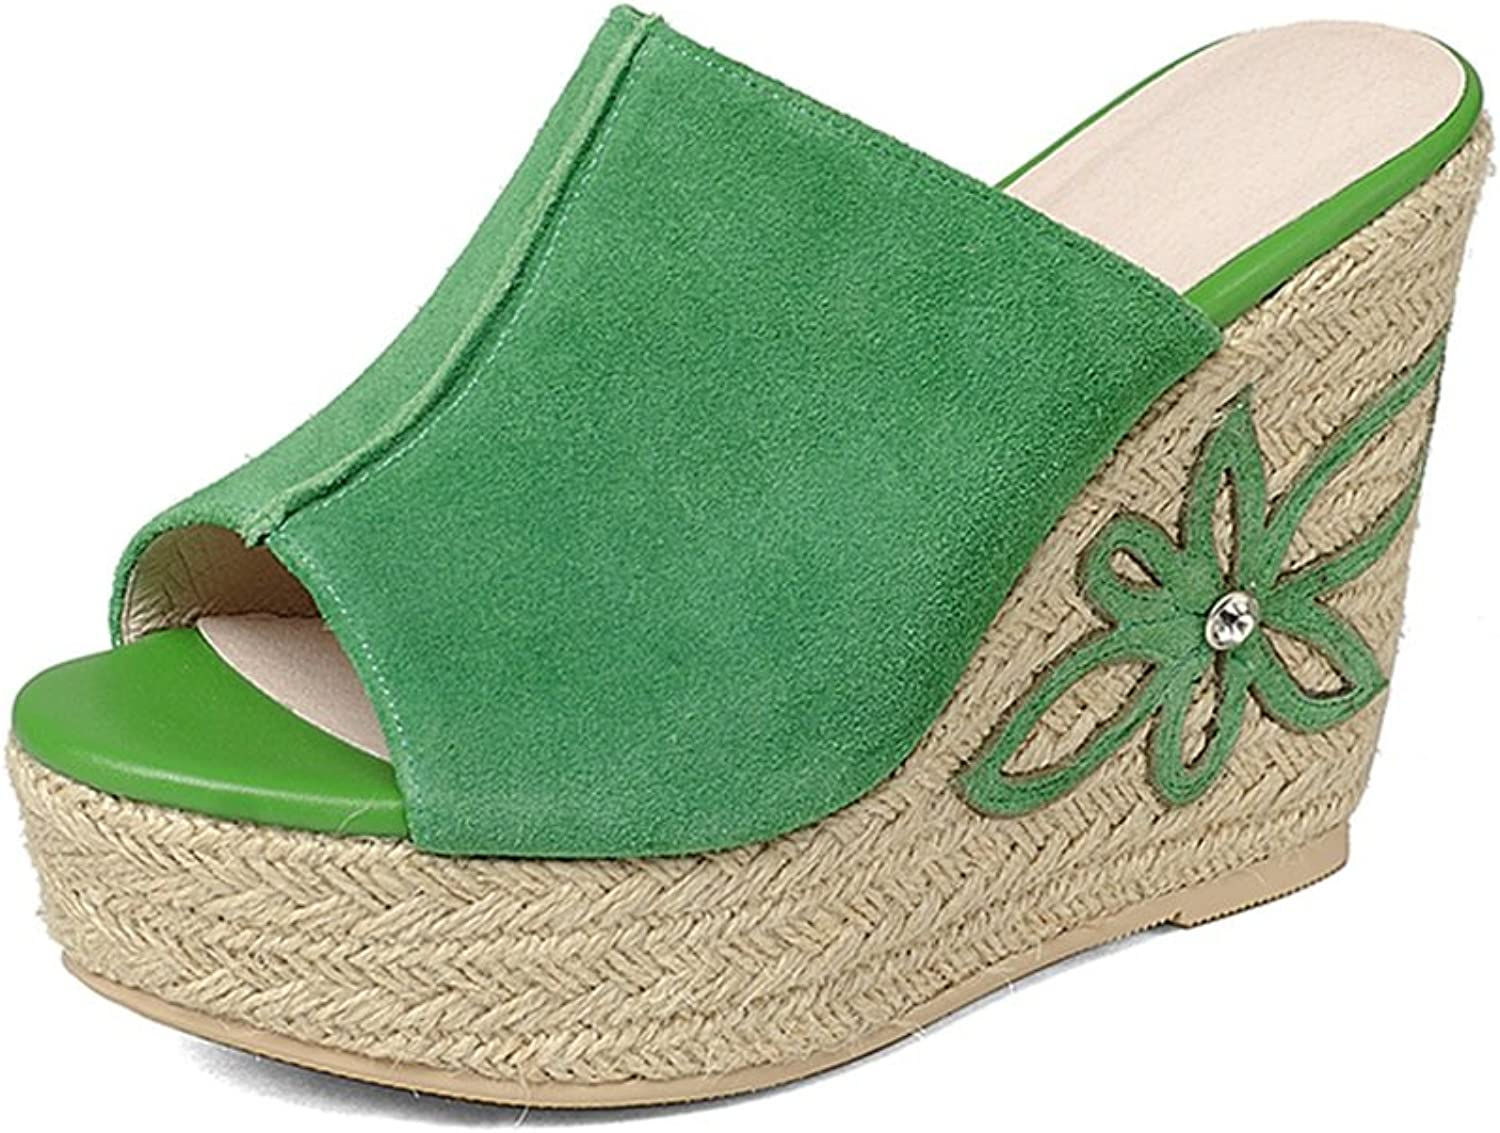 Sandals Slippers Summer New Sandals Women's Summer High Heel Sandals Sandals & Slippers Women's Summer Slippers (11cm High) (color   Green, Size   39)